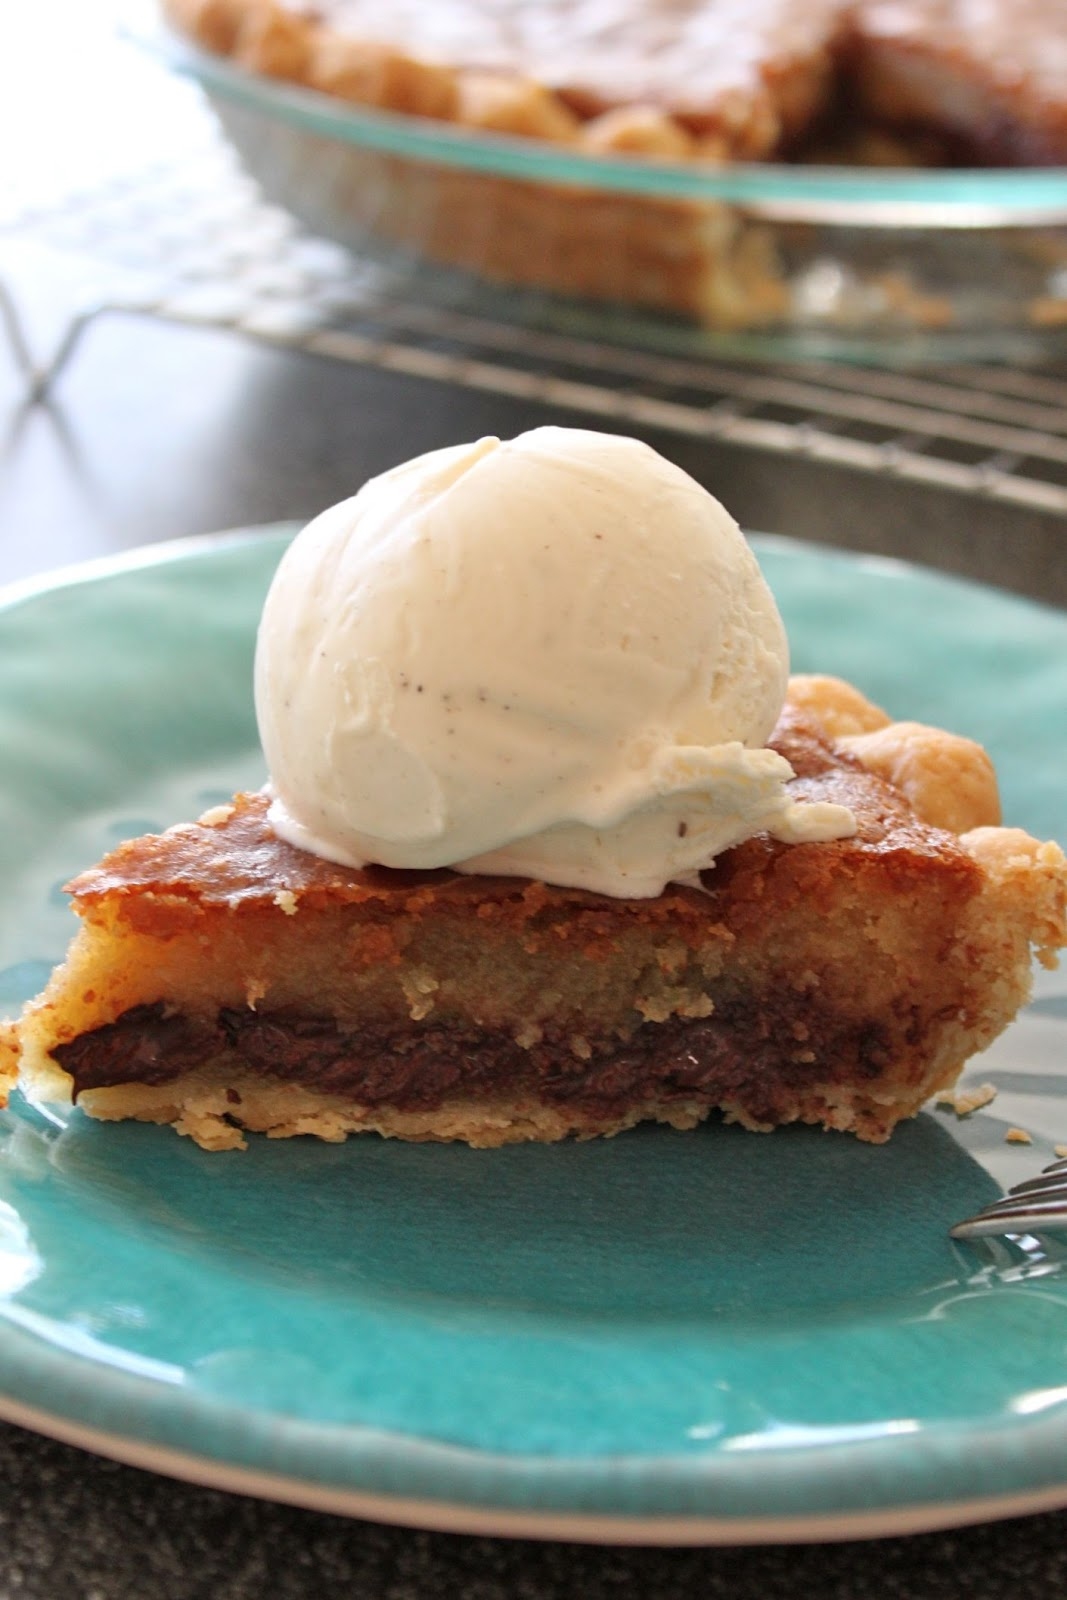 Baked Perfection: Chocolate Chip Cookie Pie